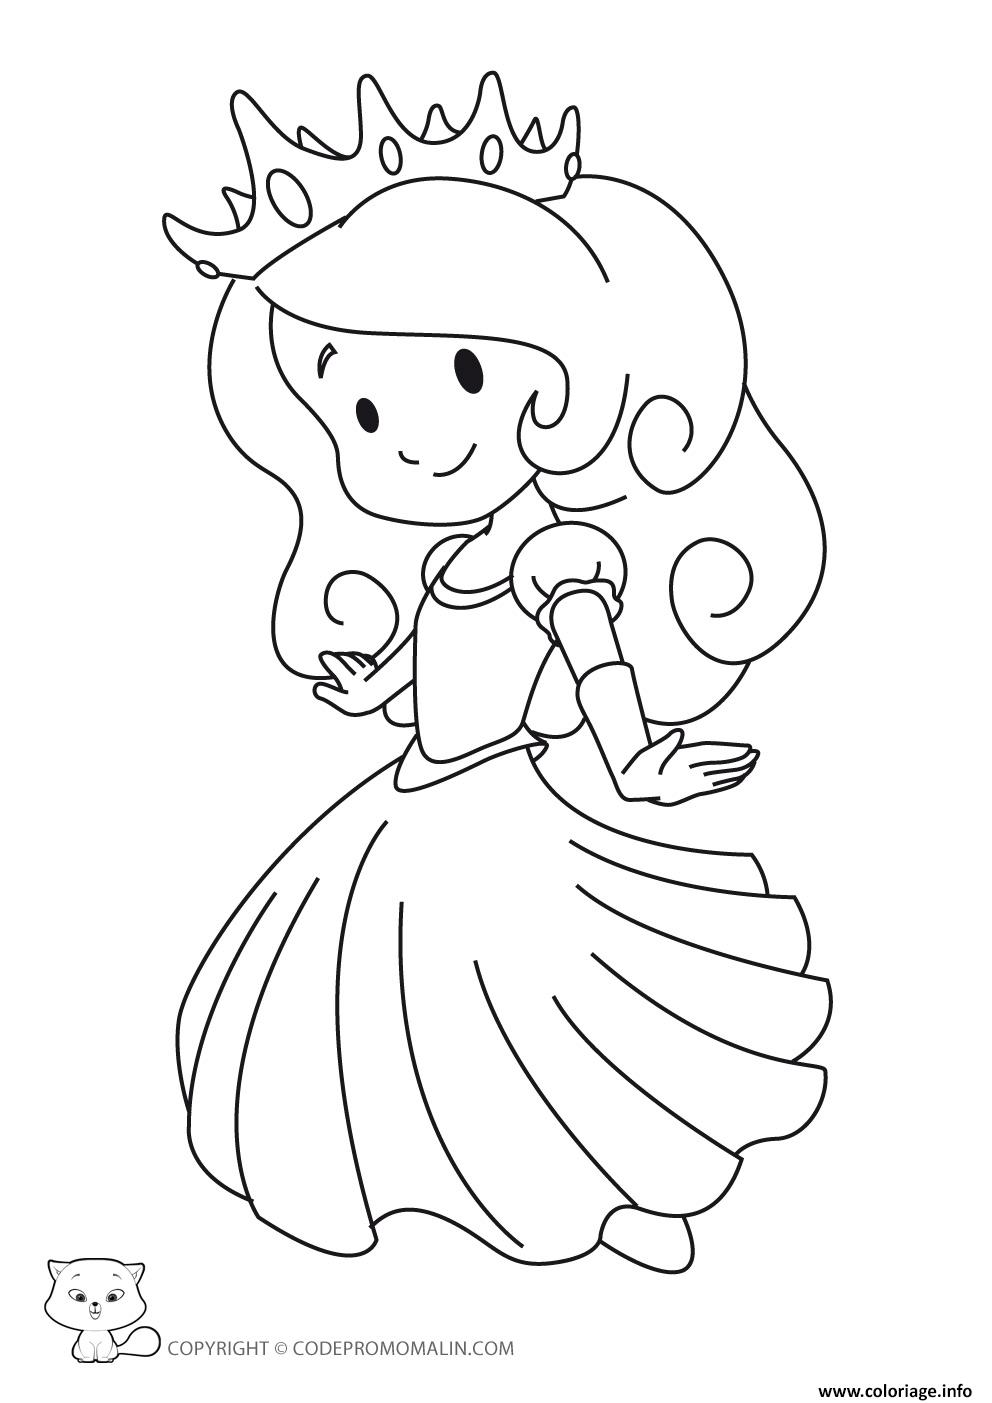 Coloriage disney princesse 60 dessin - Coloriage princesses disney a imprimer ...